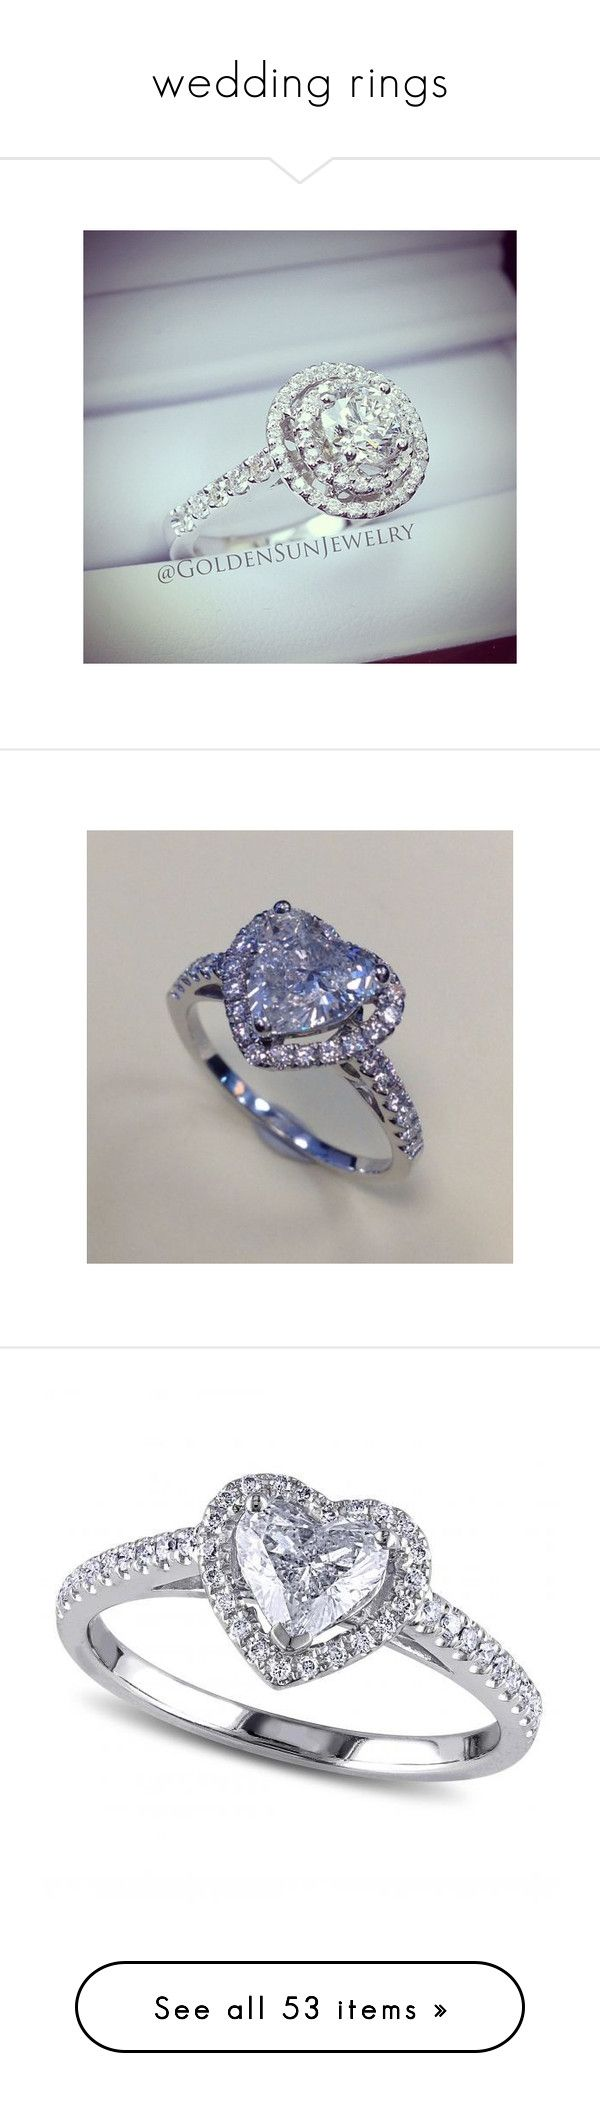 wedding rings by cassiedope on Polyvore featuring polyvore, women's fashion, jewelry, rings, instagram, wedding, wedding stuff, wedding rings, wedding jewelry, wedding jewellery, heart shaped diamond ring, heart ring, heart shaped wedding rings, white gold engagement rings, 18k white gold ring, white, round engagement rings, white gold jewelry, 14k engagement ring, heart engagement rings, white ring, aneis, yellow gold diamond ring, gold wedding rings, yellow gold wedding rings, engagement…